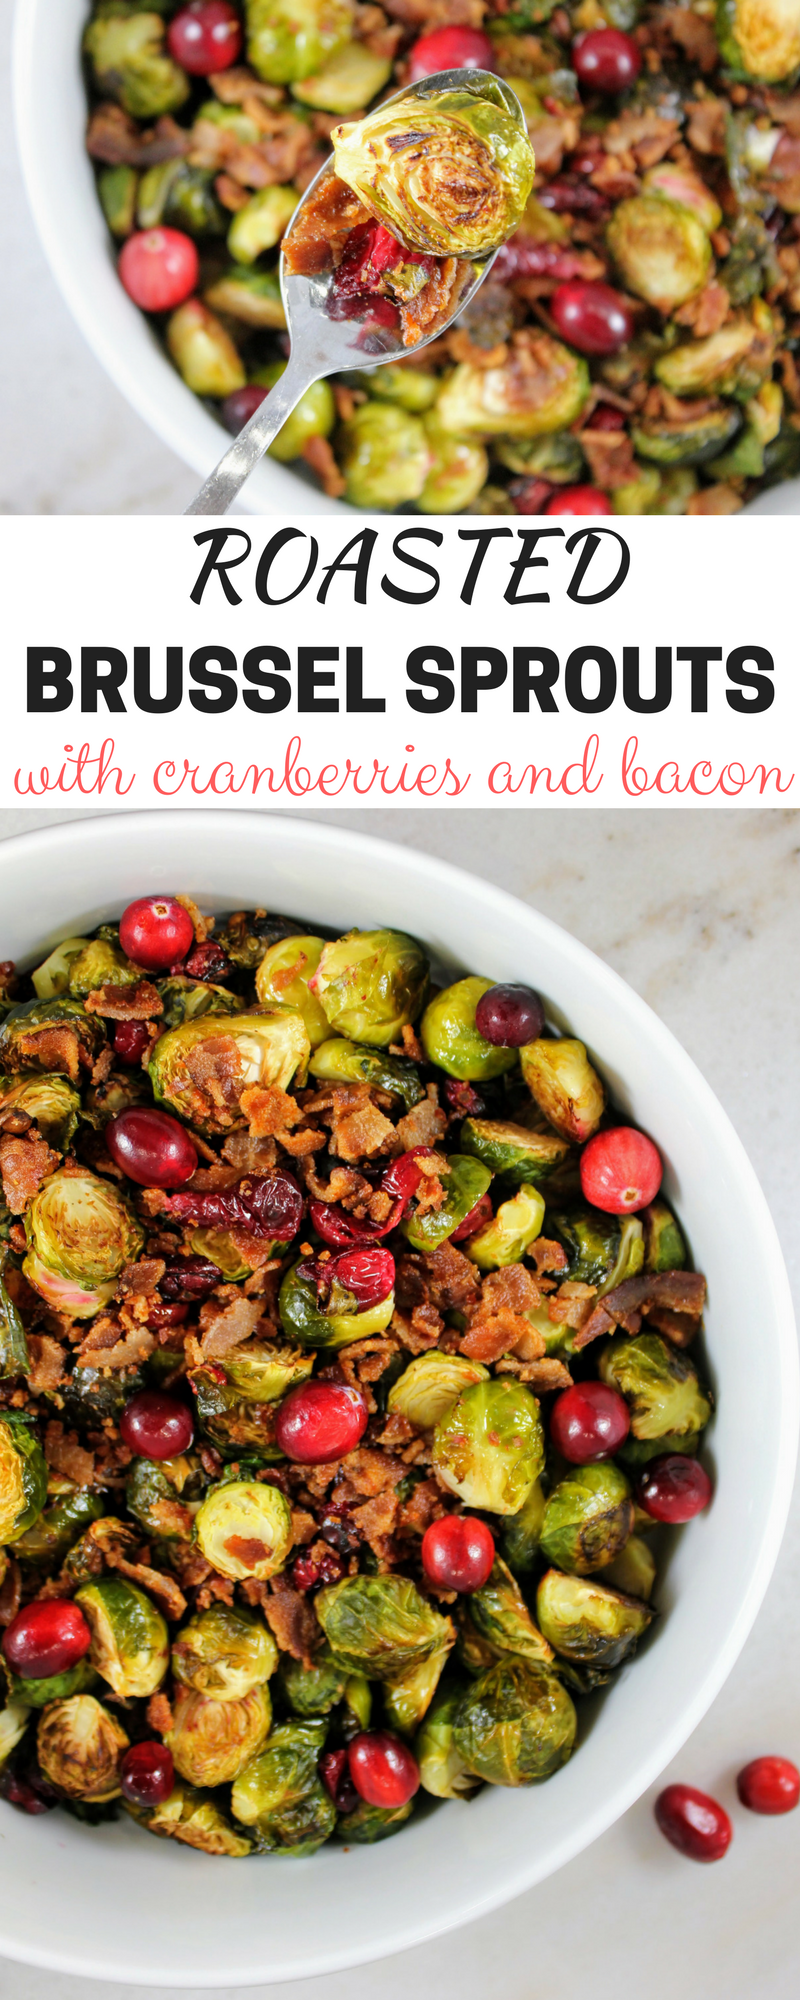 Roasted Brussel Sprouts with bacon and cranberries